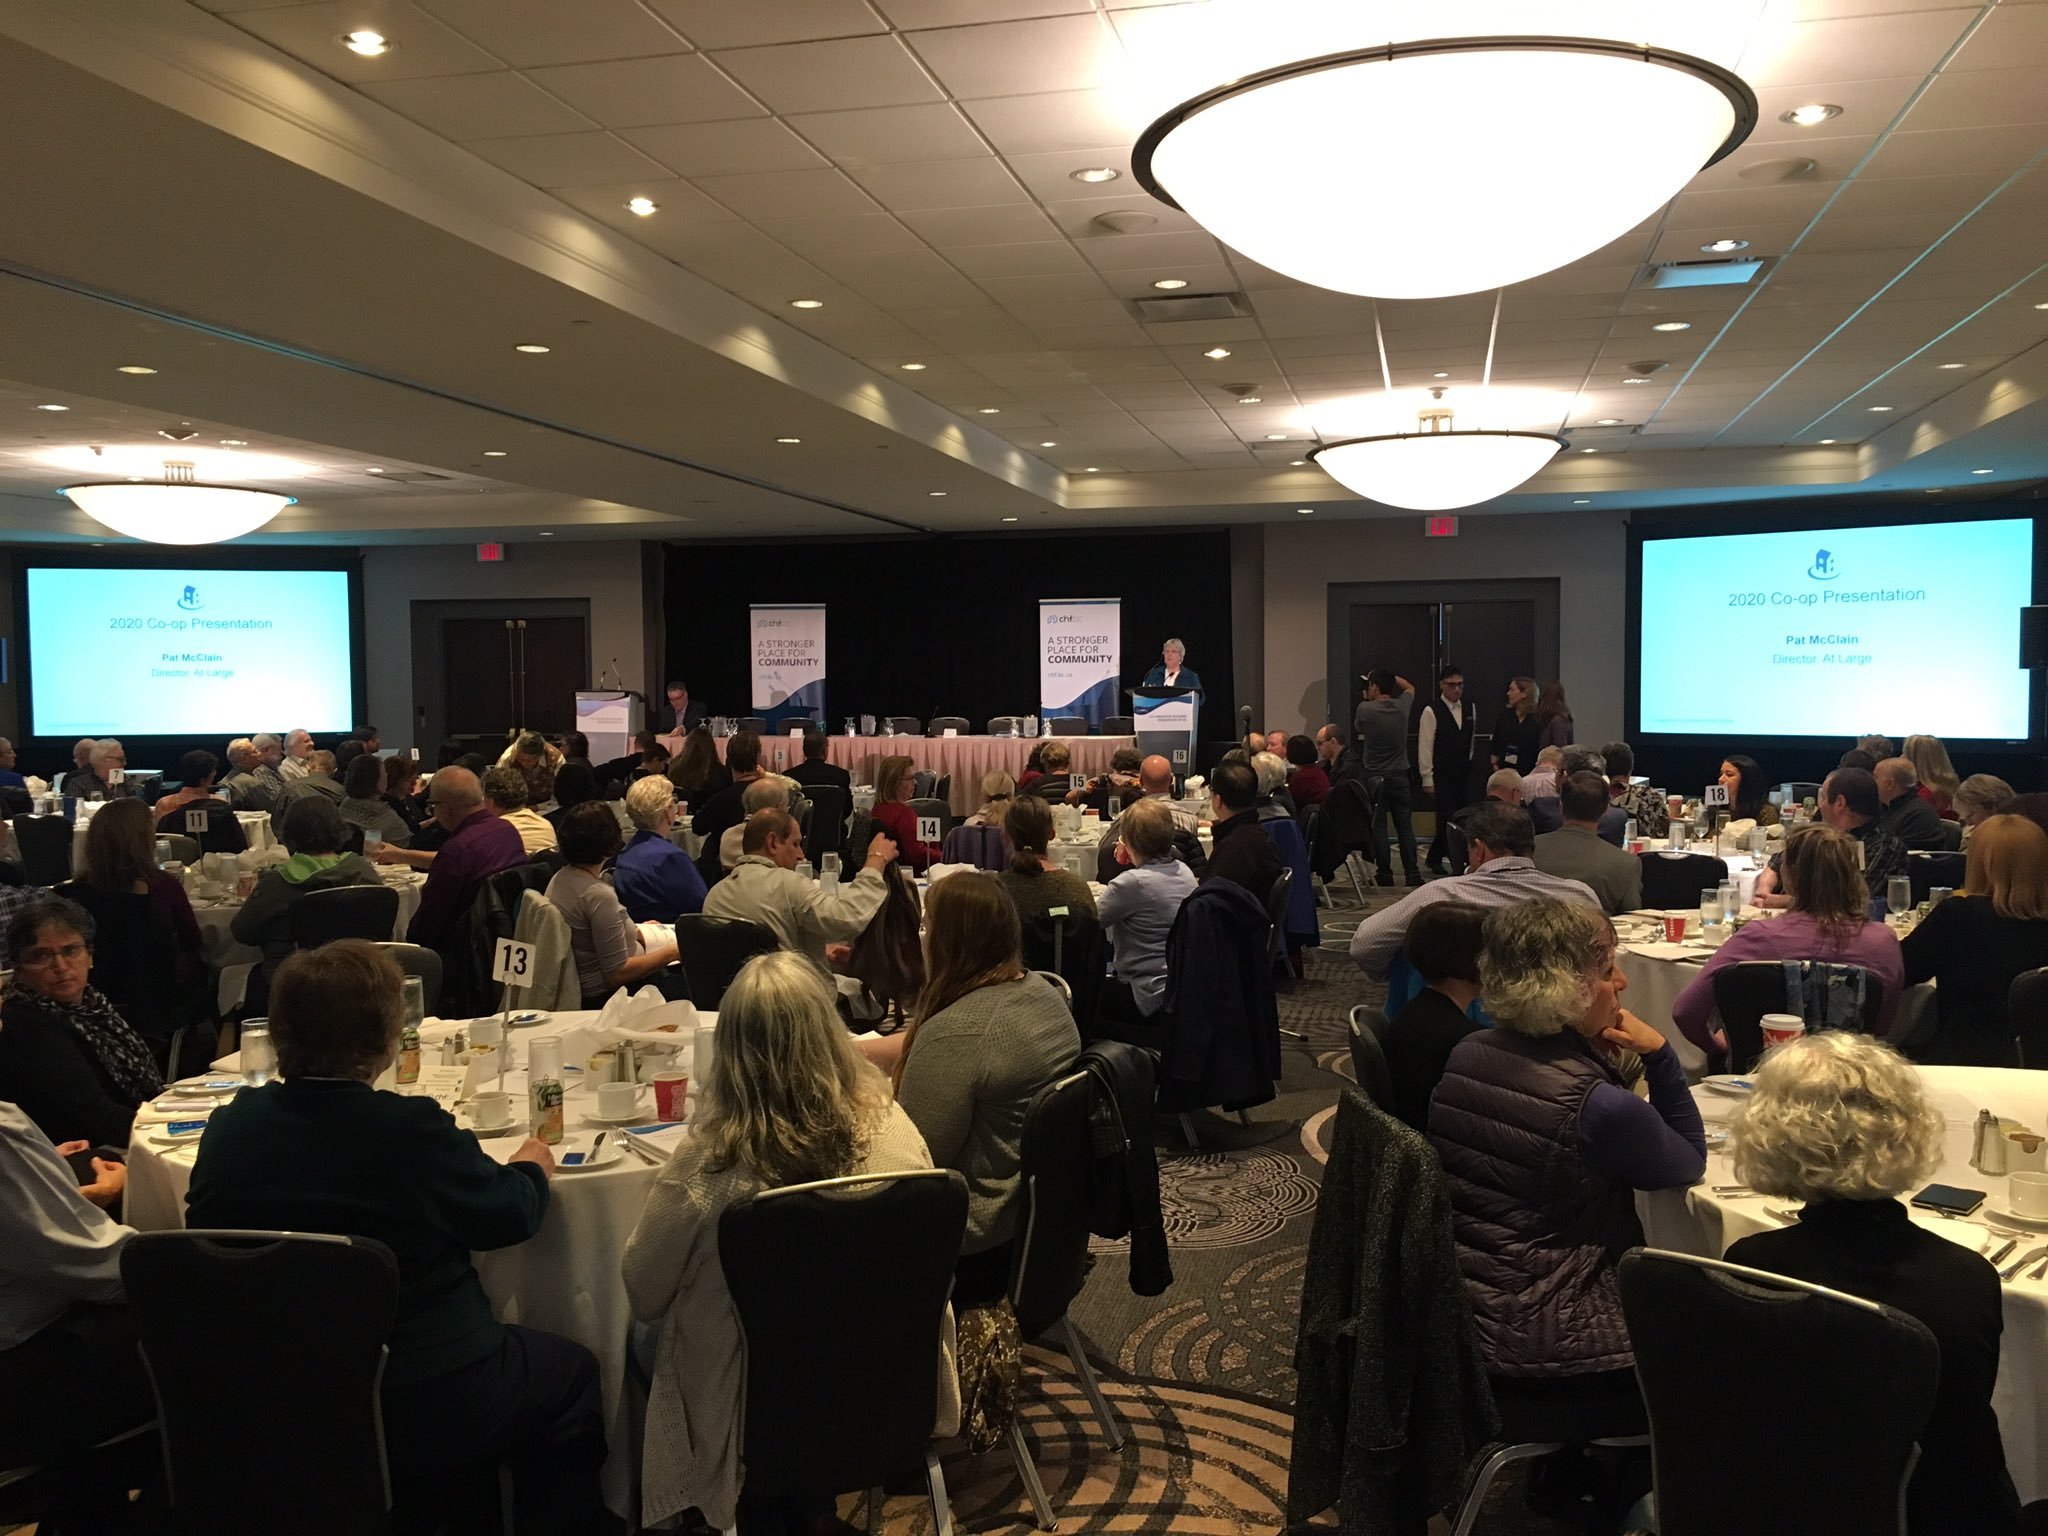 Full house at the @chfbc AGM! I look fwd to facilitating the Our Movement Our Future forum later today. #housingcentral https://t.co/GOPzhUoZIK